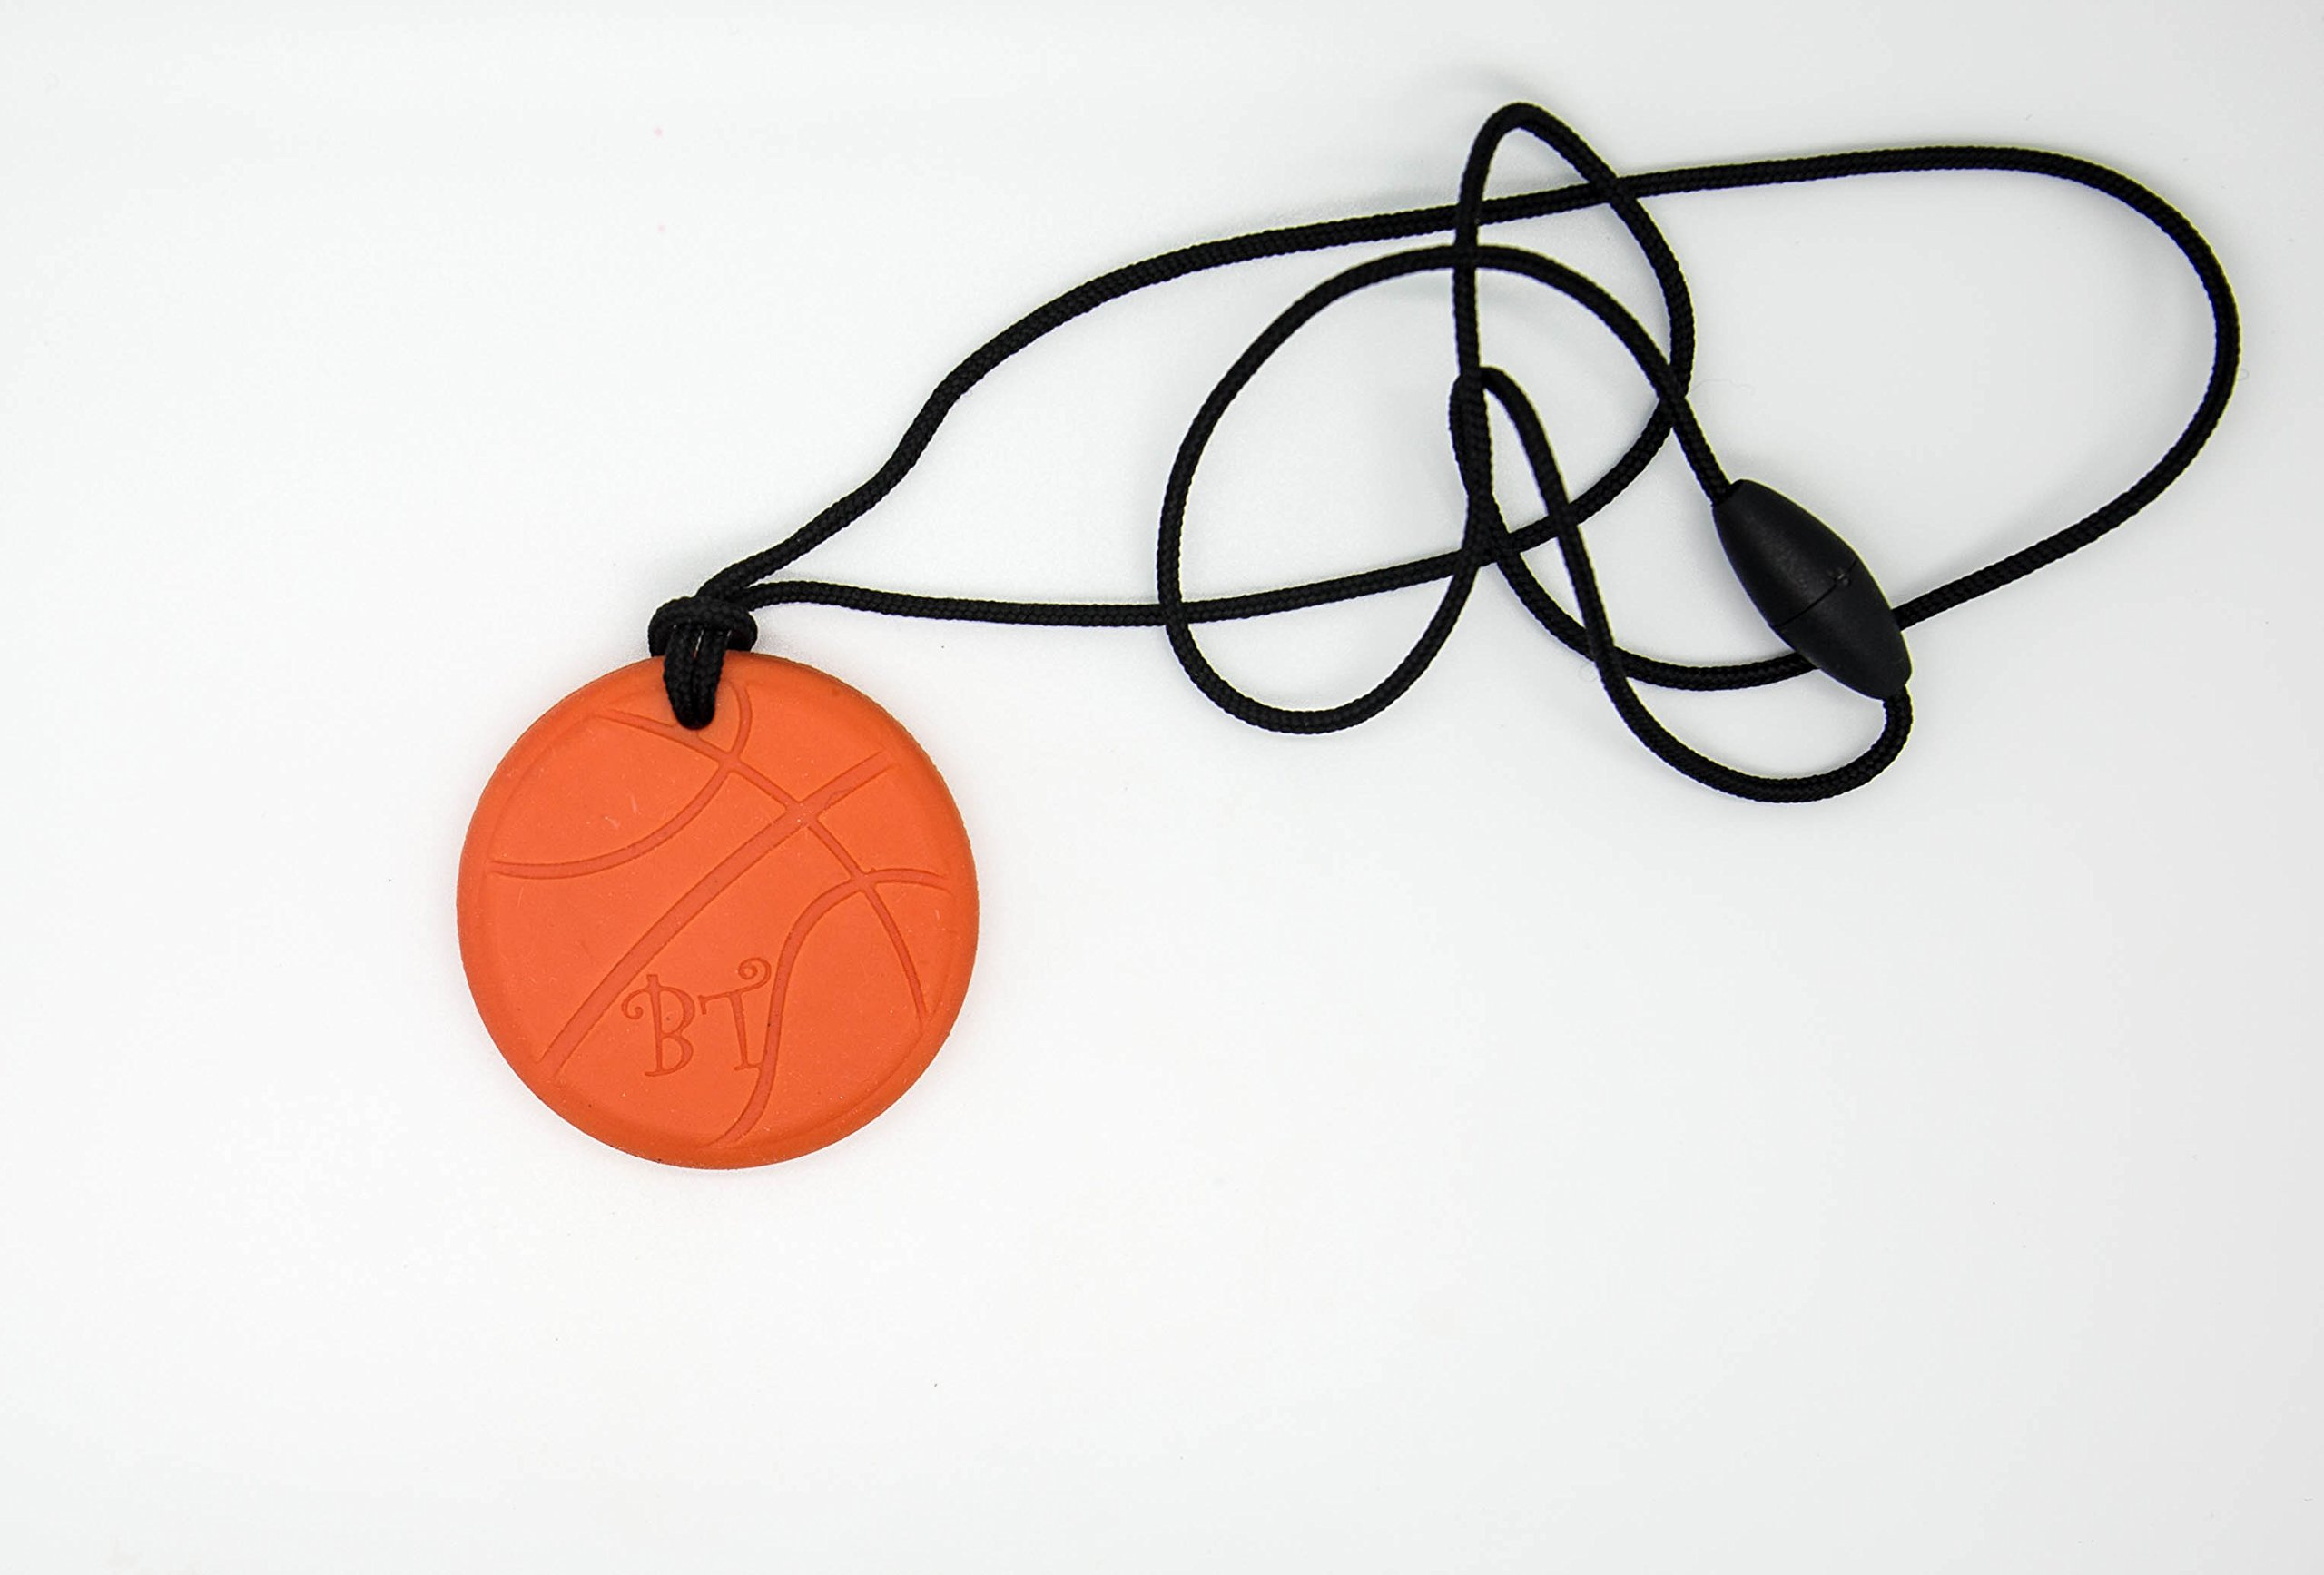 Bestie Toys Basketball Sensory Chew Necklace-(1PK)-Food Grade Silicone - Chewable Jewelry for Boys & Girls with Autism SPD ADHD Chewing Biting Stimming Needs-Oral Motor Aid-Made in The U.S.A (Orange)